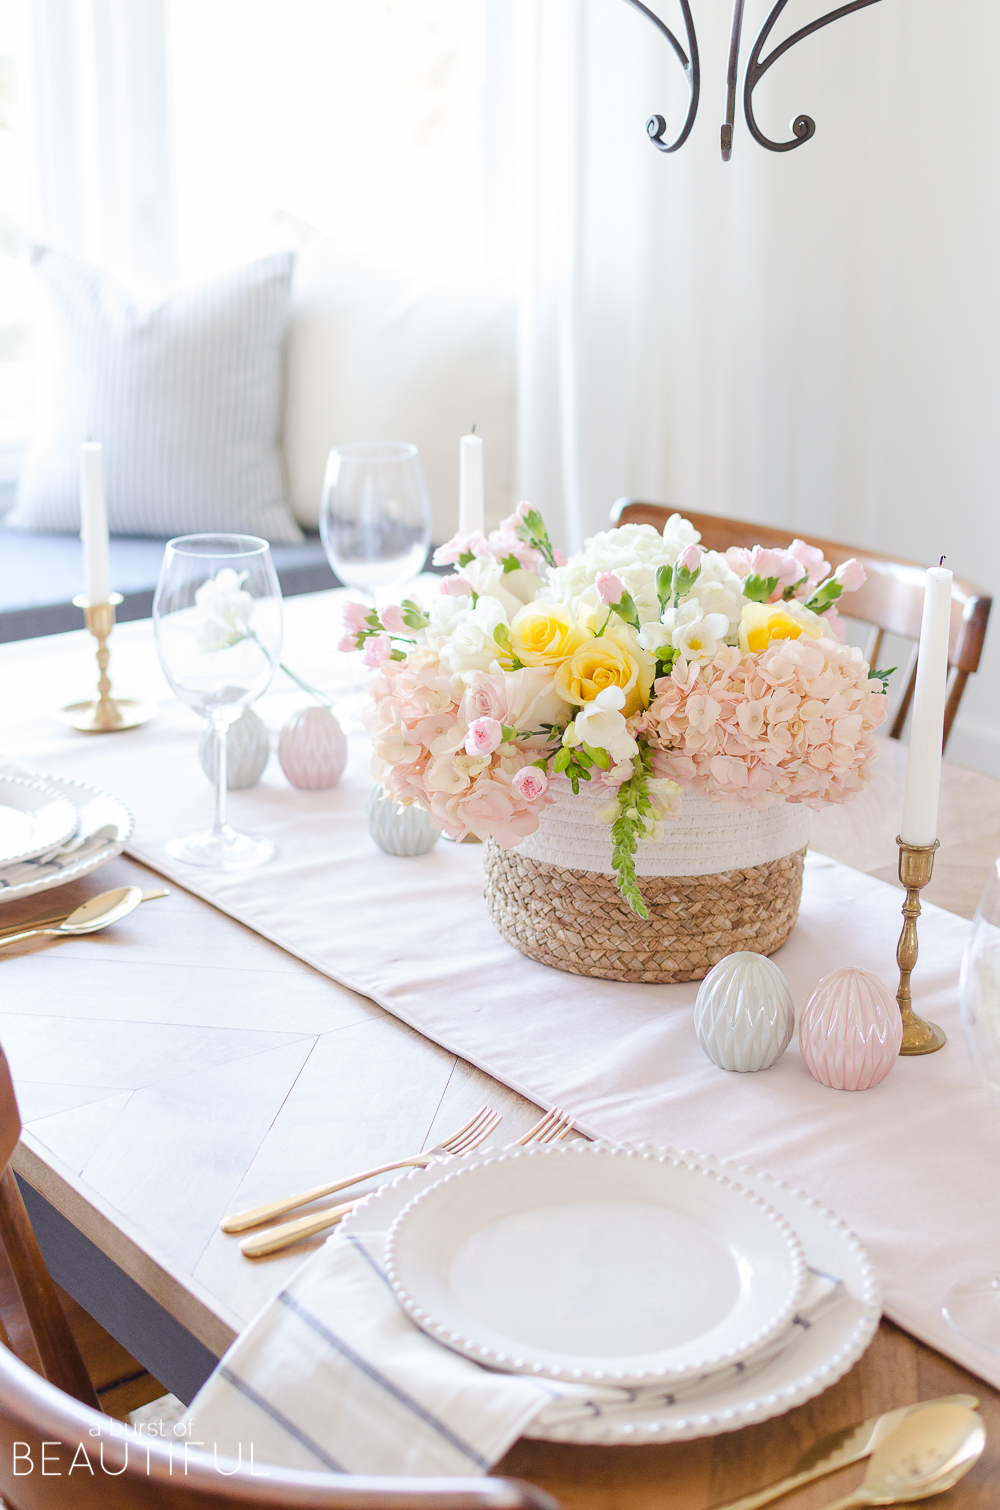 Host a beautiful Easter brunch or dinner with these colorful Easter tablescape and centerpiece ideas.